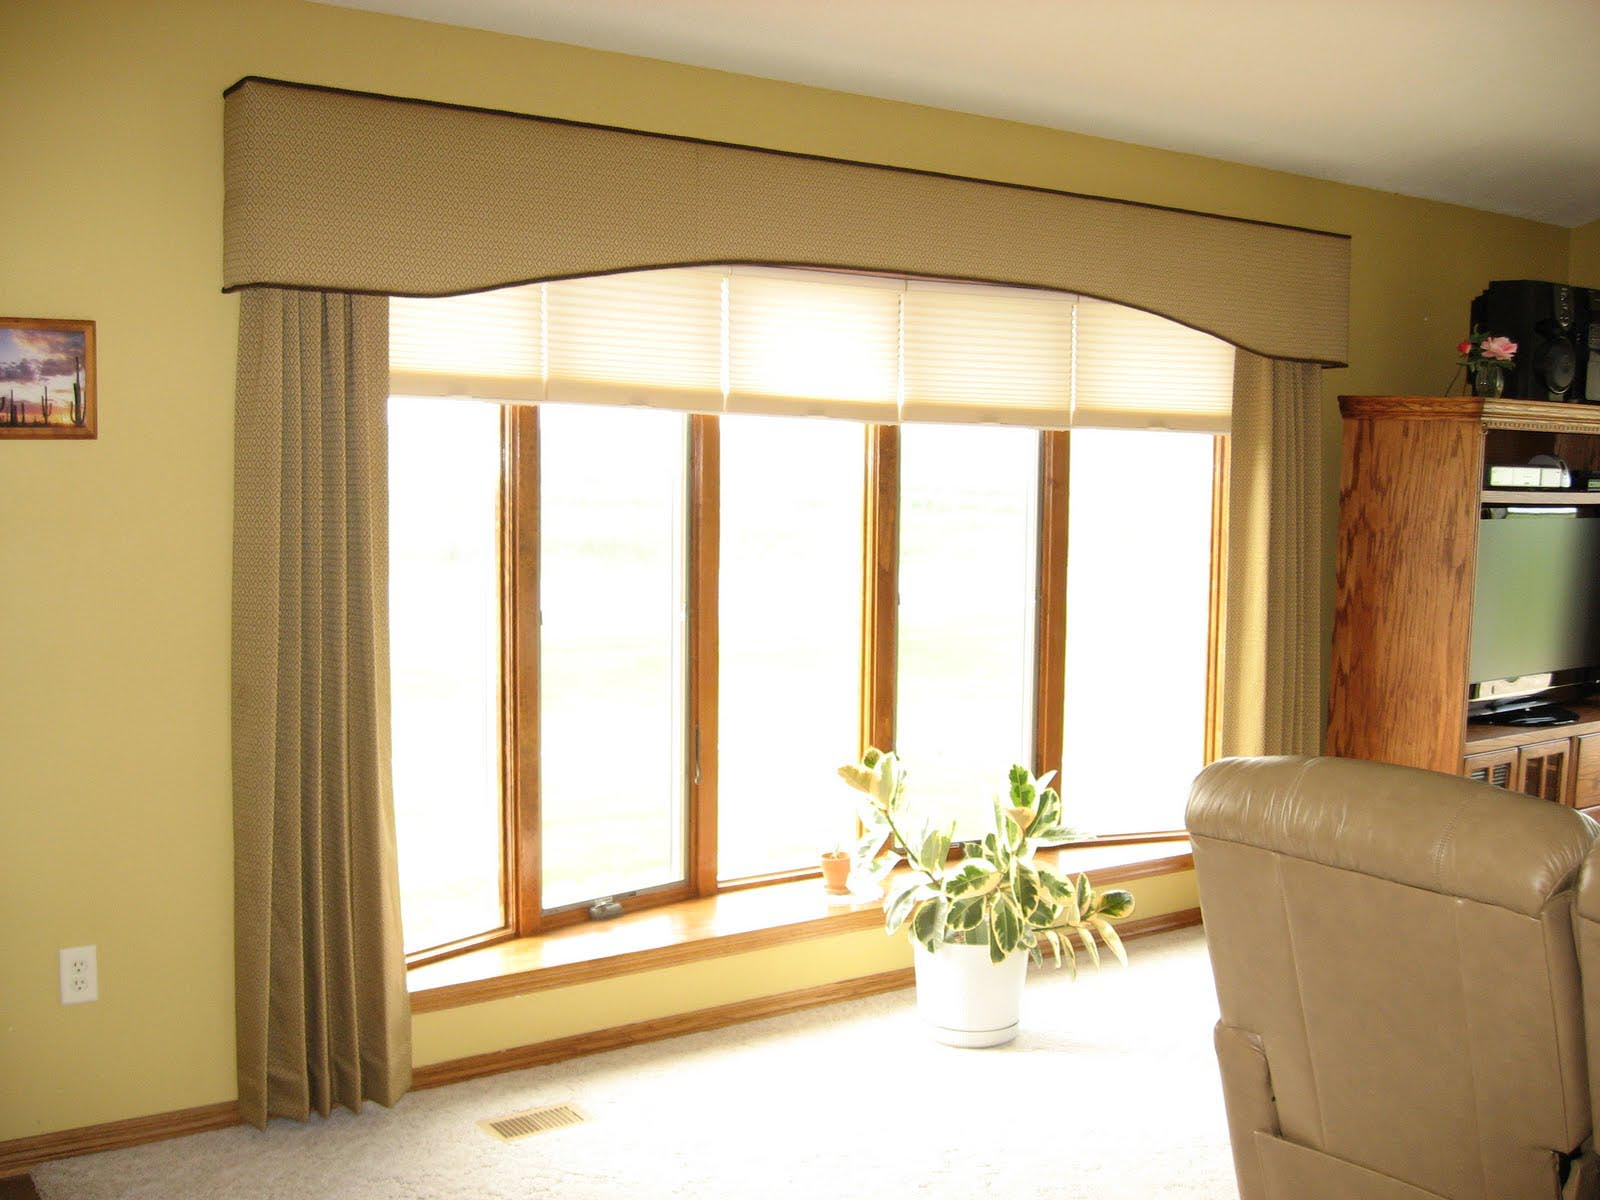 Window Treatments Cornice Boards Window Treatments